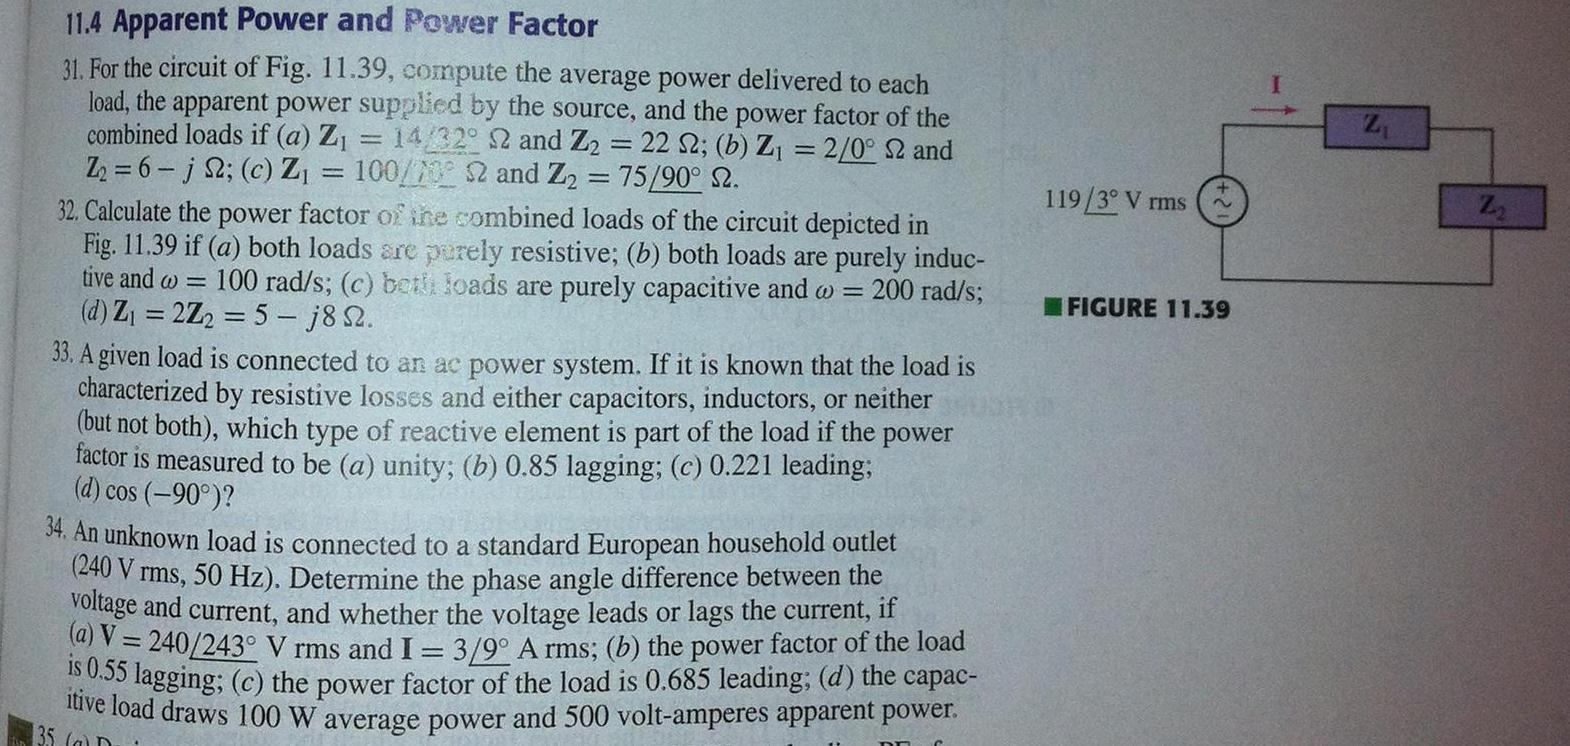 For the circuit of Fig. 11,39, compute the average